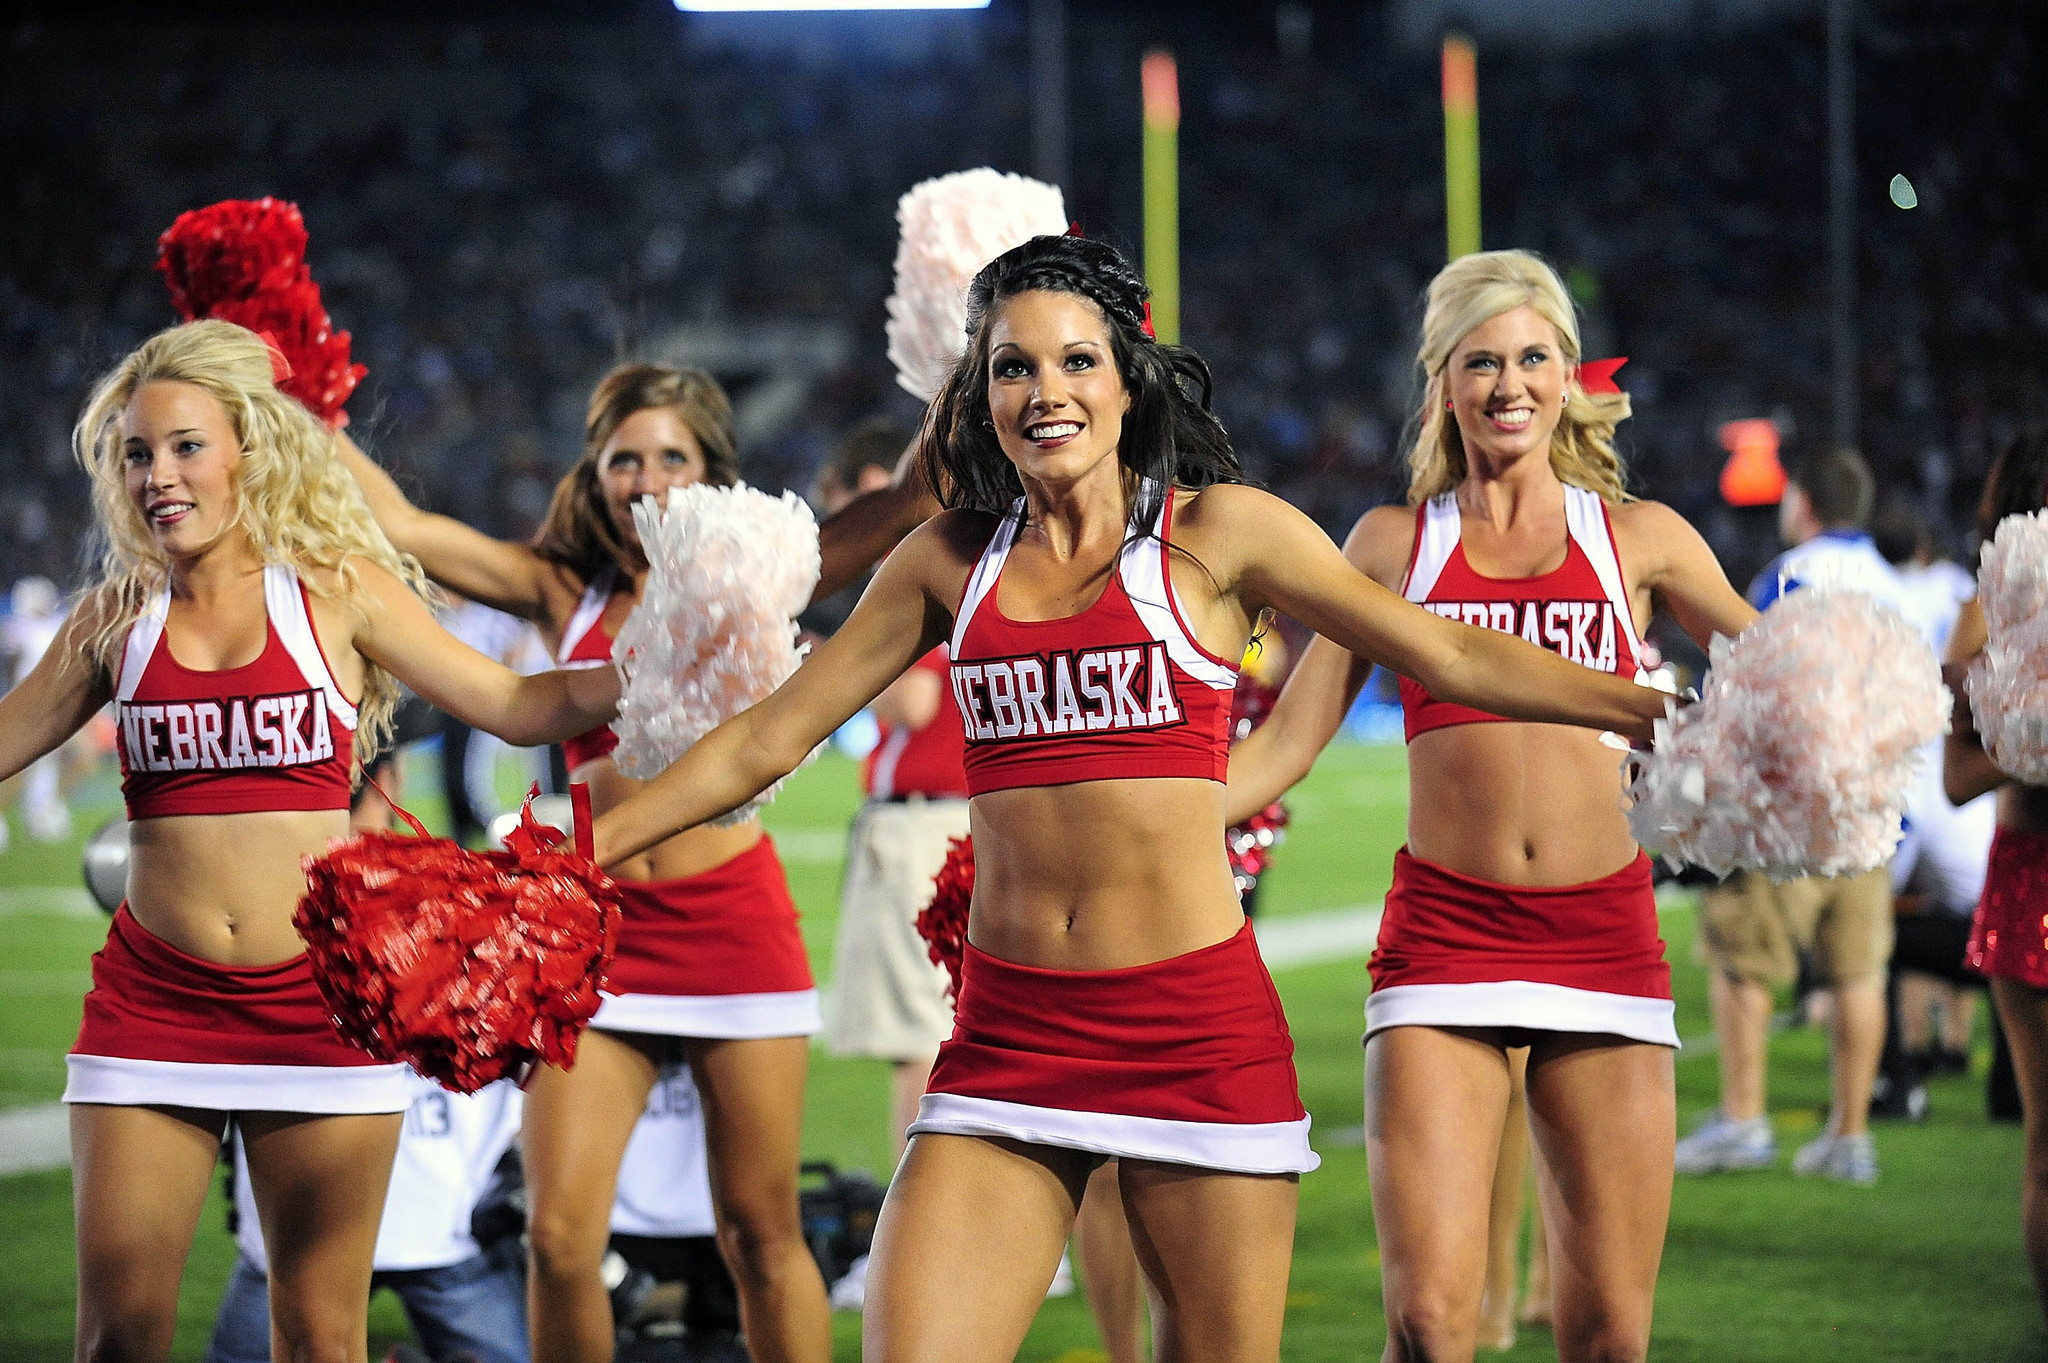 Real hot college cheerleaders